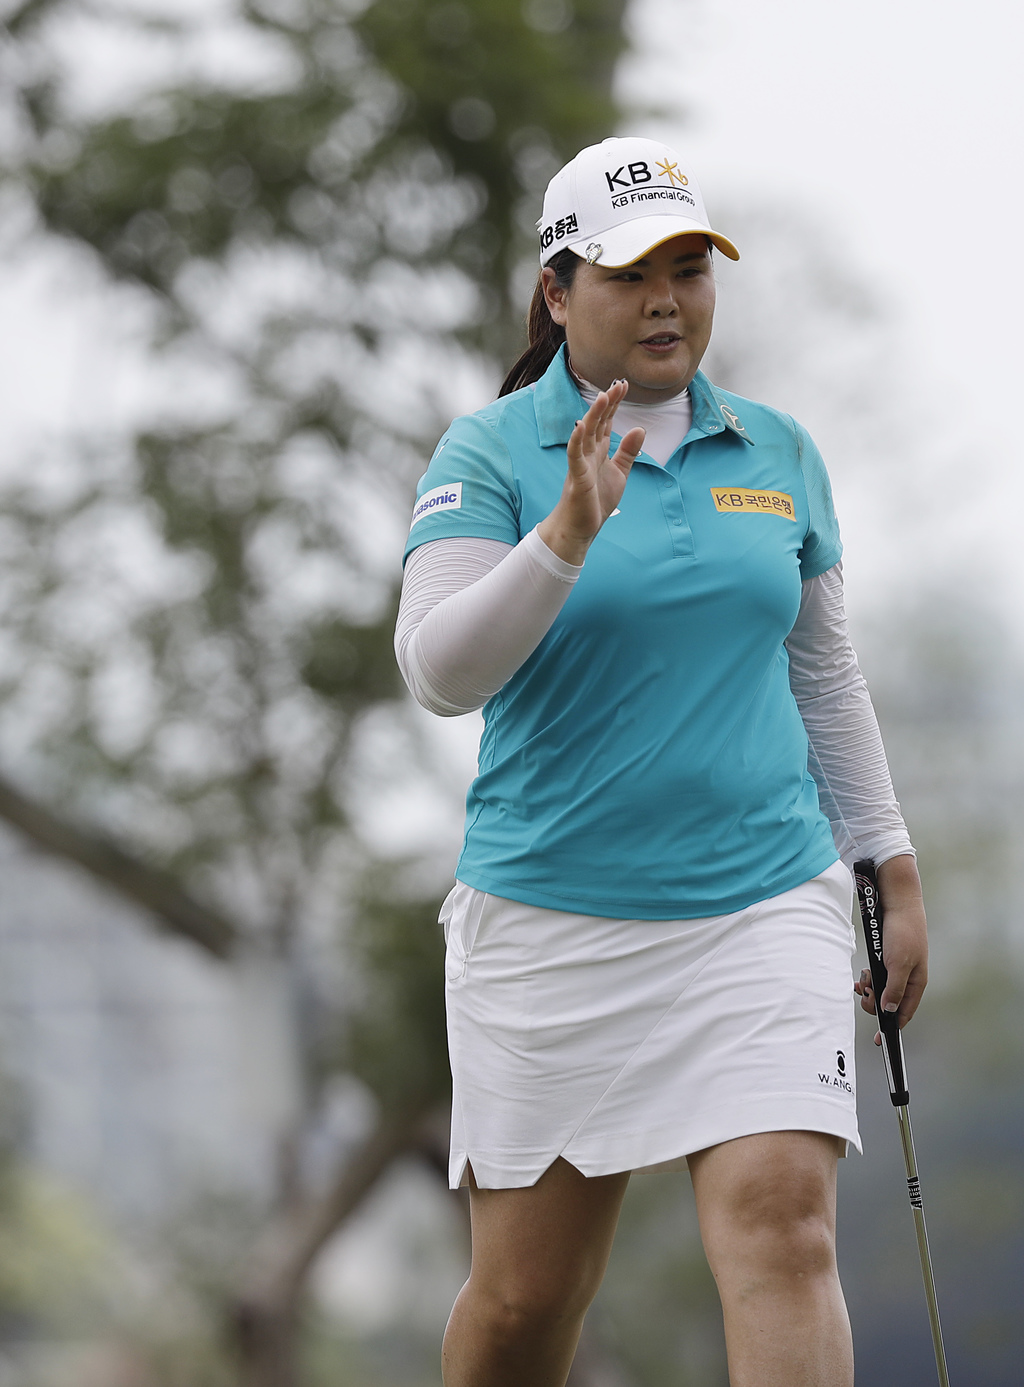 Inbee Park of South Korea waves to the crowd after sinking her putt on the 11th hole during the final round of the HSBC Women's Champio...